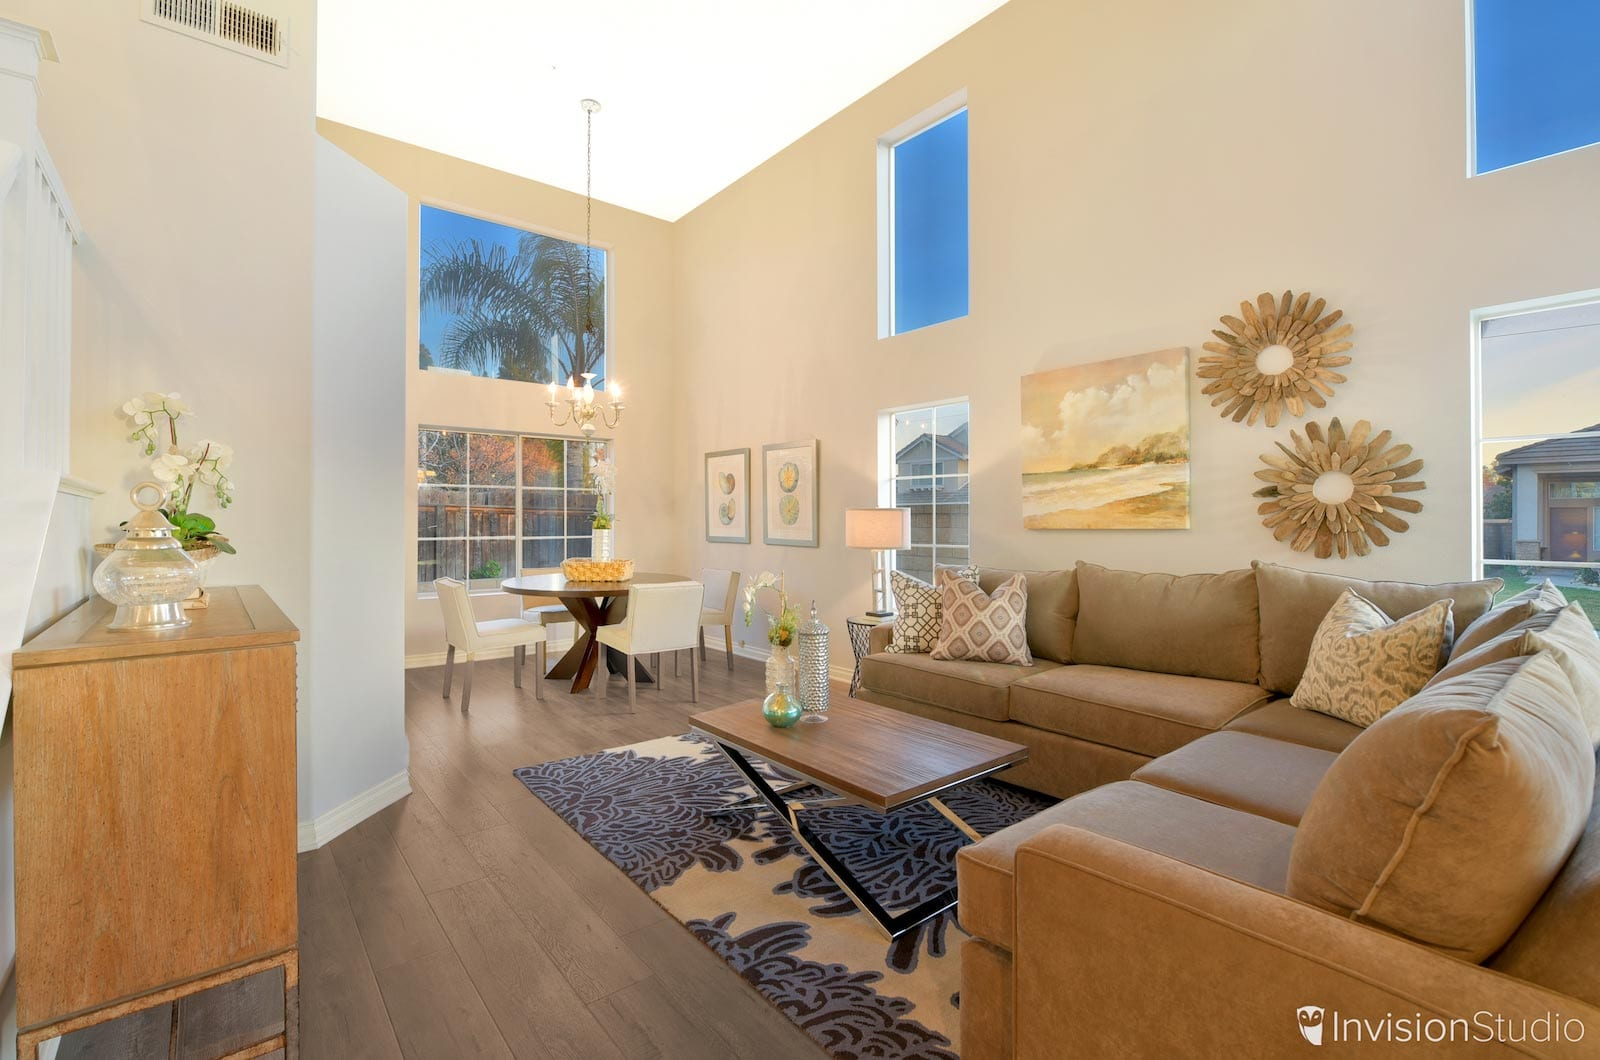 Living Room 2 | Orange County HDR Real Estate Photographer | Orange County Virtual Tour Photographer | Orange County Aerial Photography Services | Orange County Matterport 3D Tour Service Provider